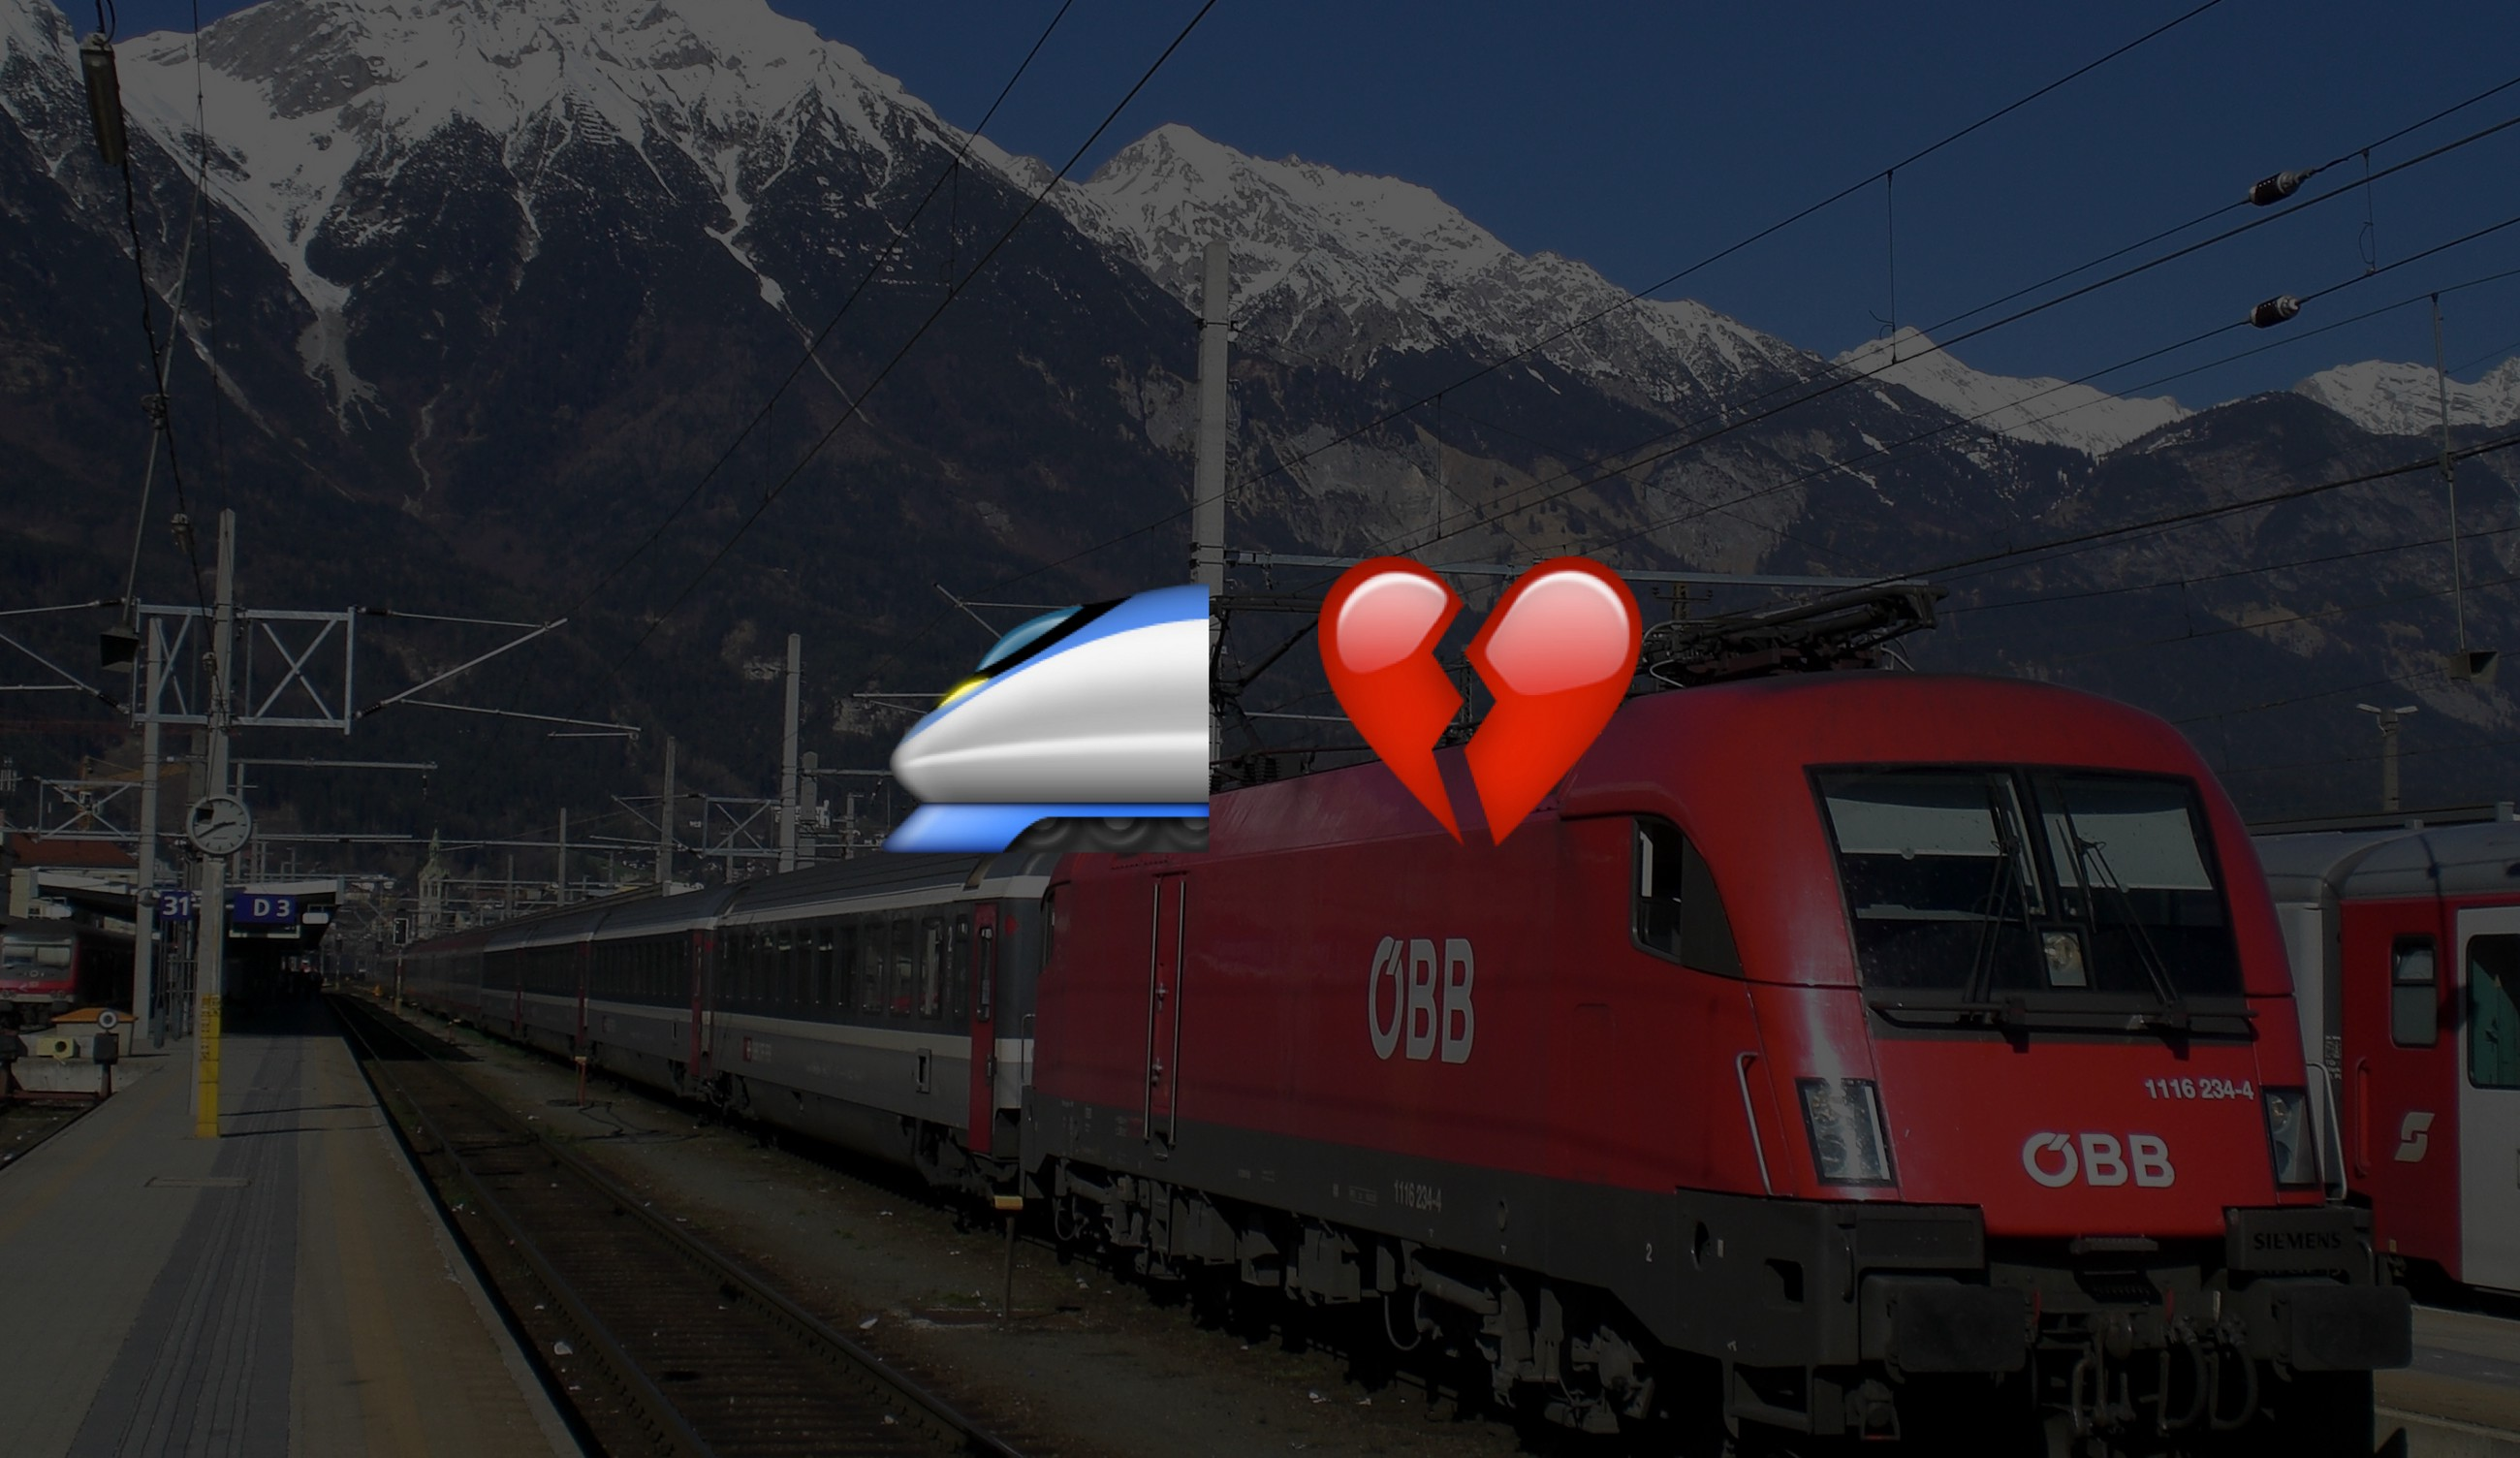 I Tried To Buy A Ticket For An öbb Train And It Was Impossible